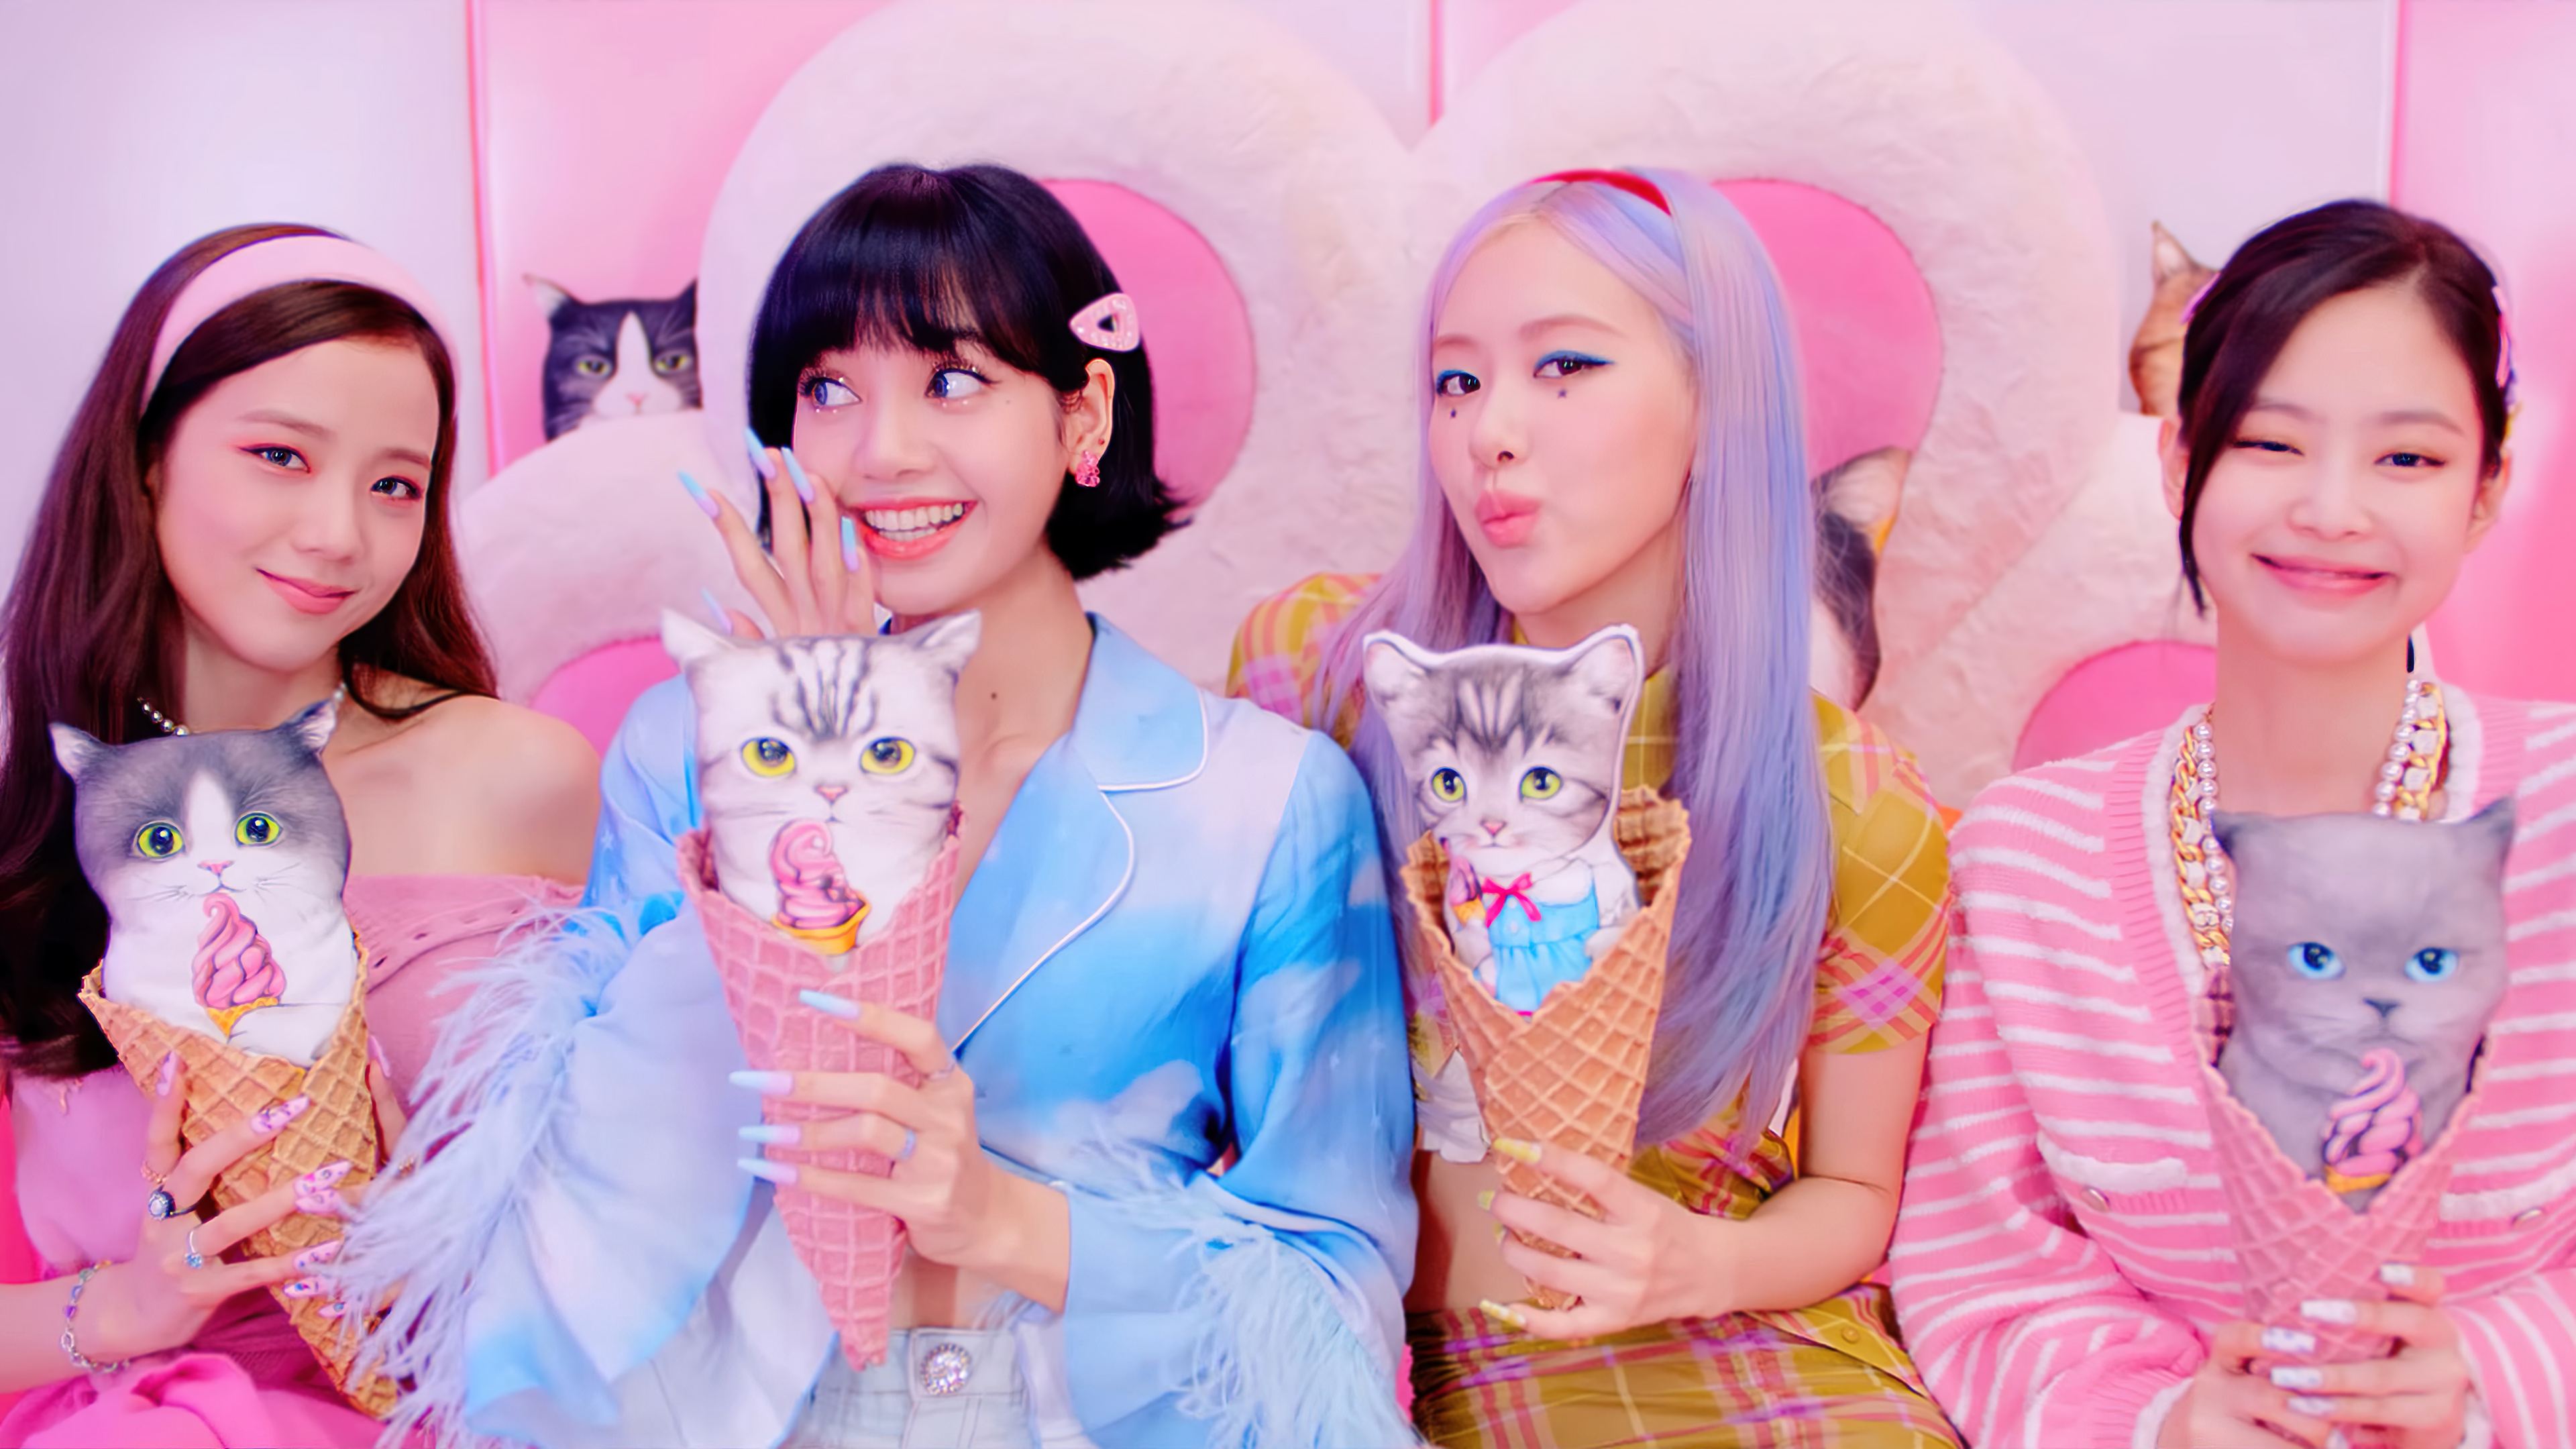 Girls From Blackpink With Kittens In Cones Wallpaper 4k Ultra Hd Id 6100